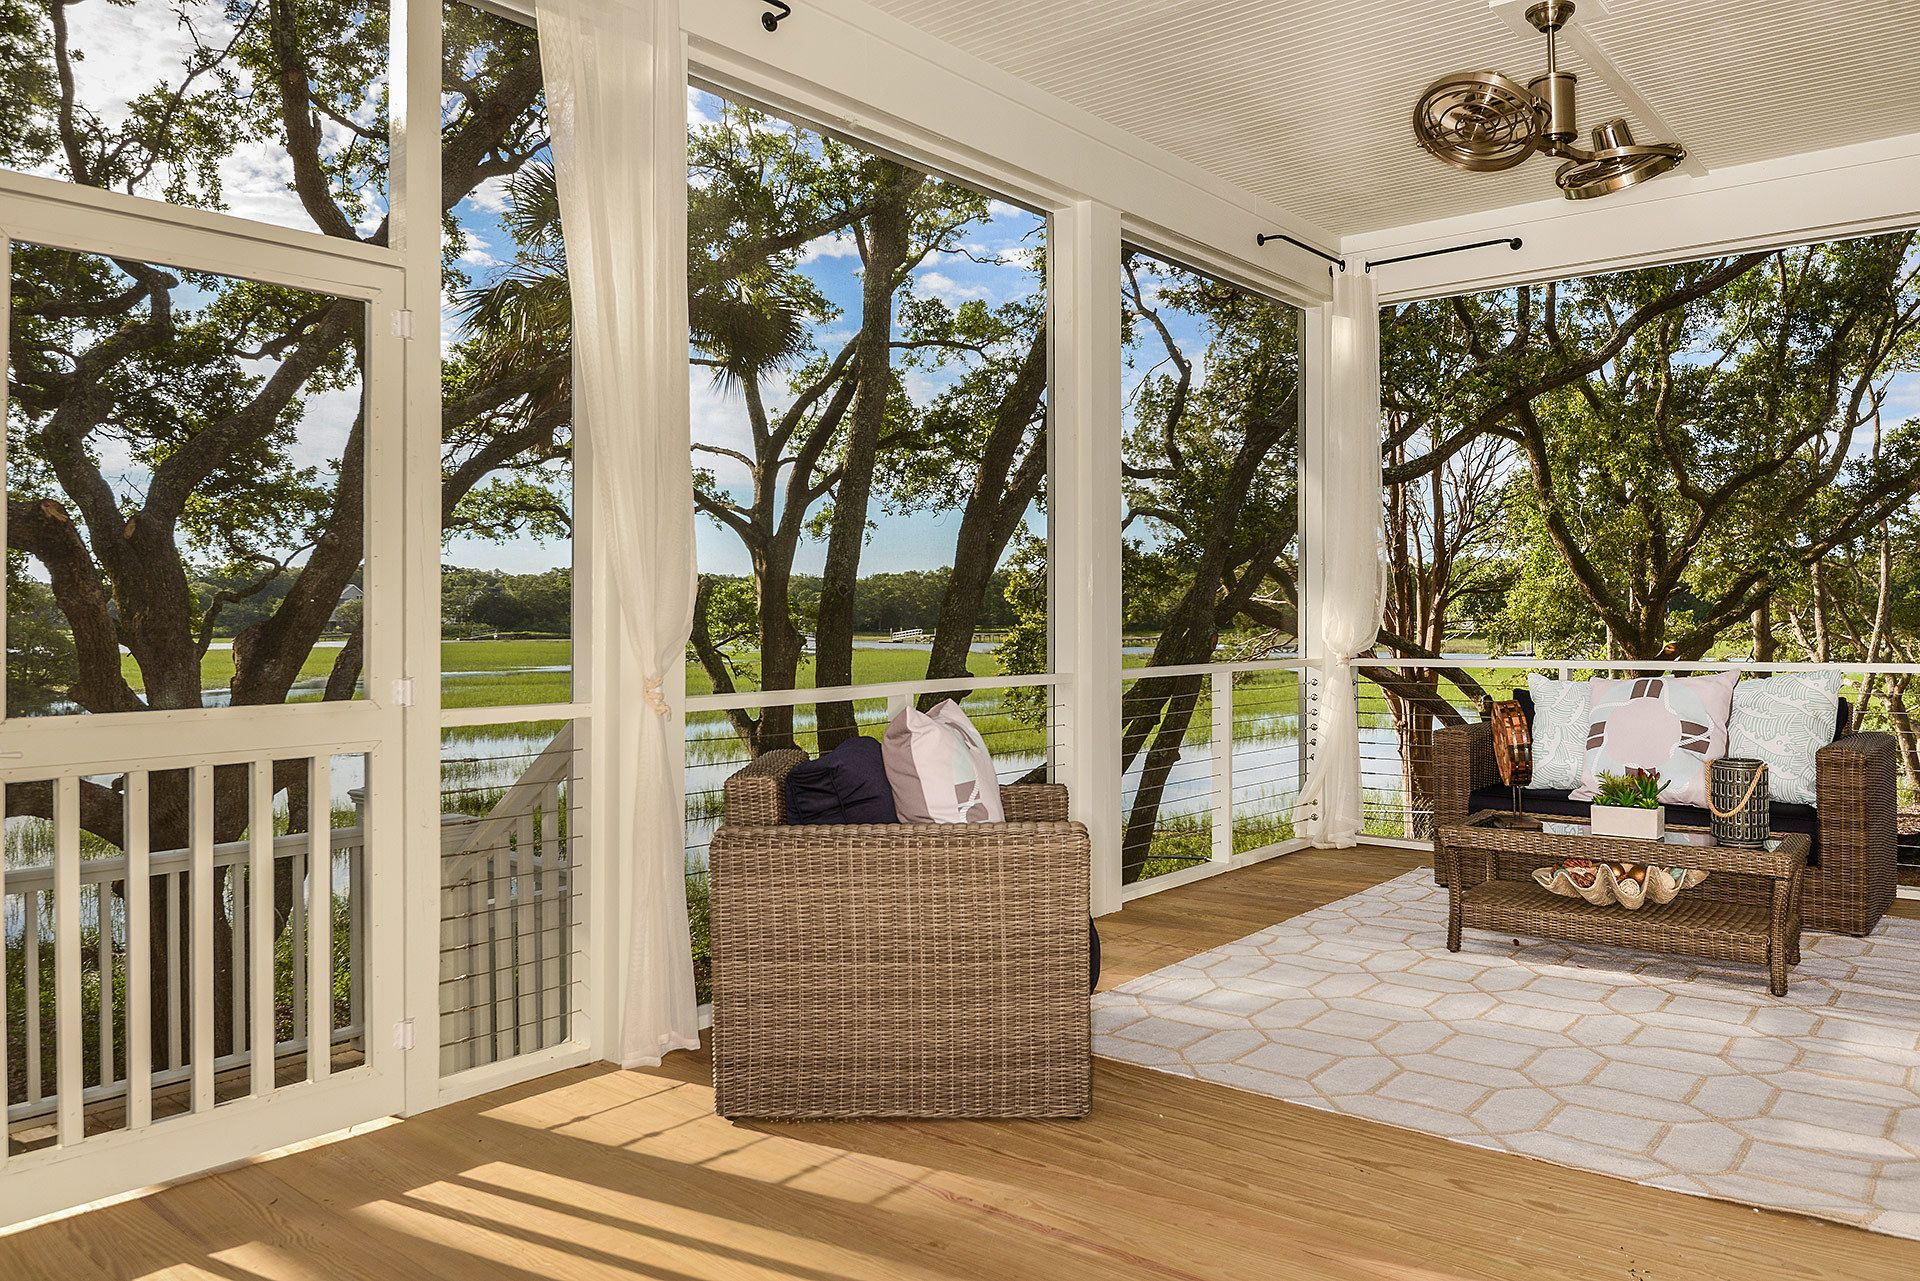 Single Family for Sale at Tidalview 1153 Hills Plantation Drive James Island, South Carolina 29412 United States